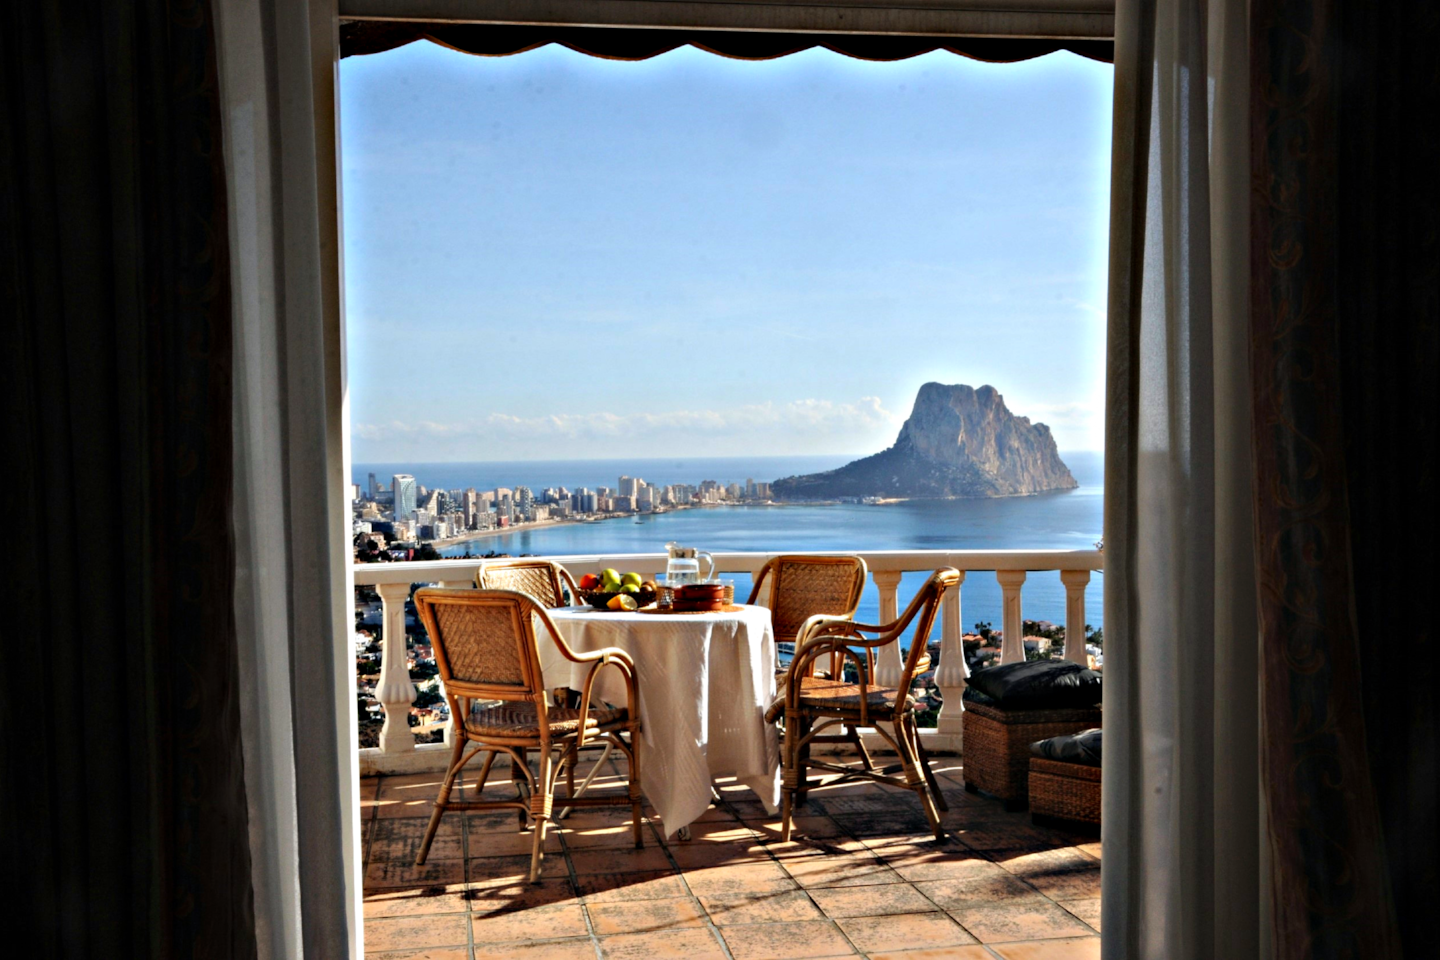 Private terrace with one of the best views in town! It's quiet and serene up here. The perfect start of a holiday day.